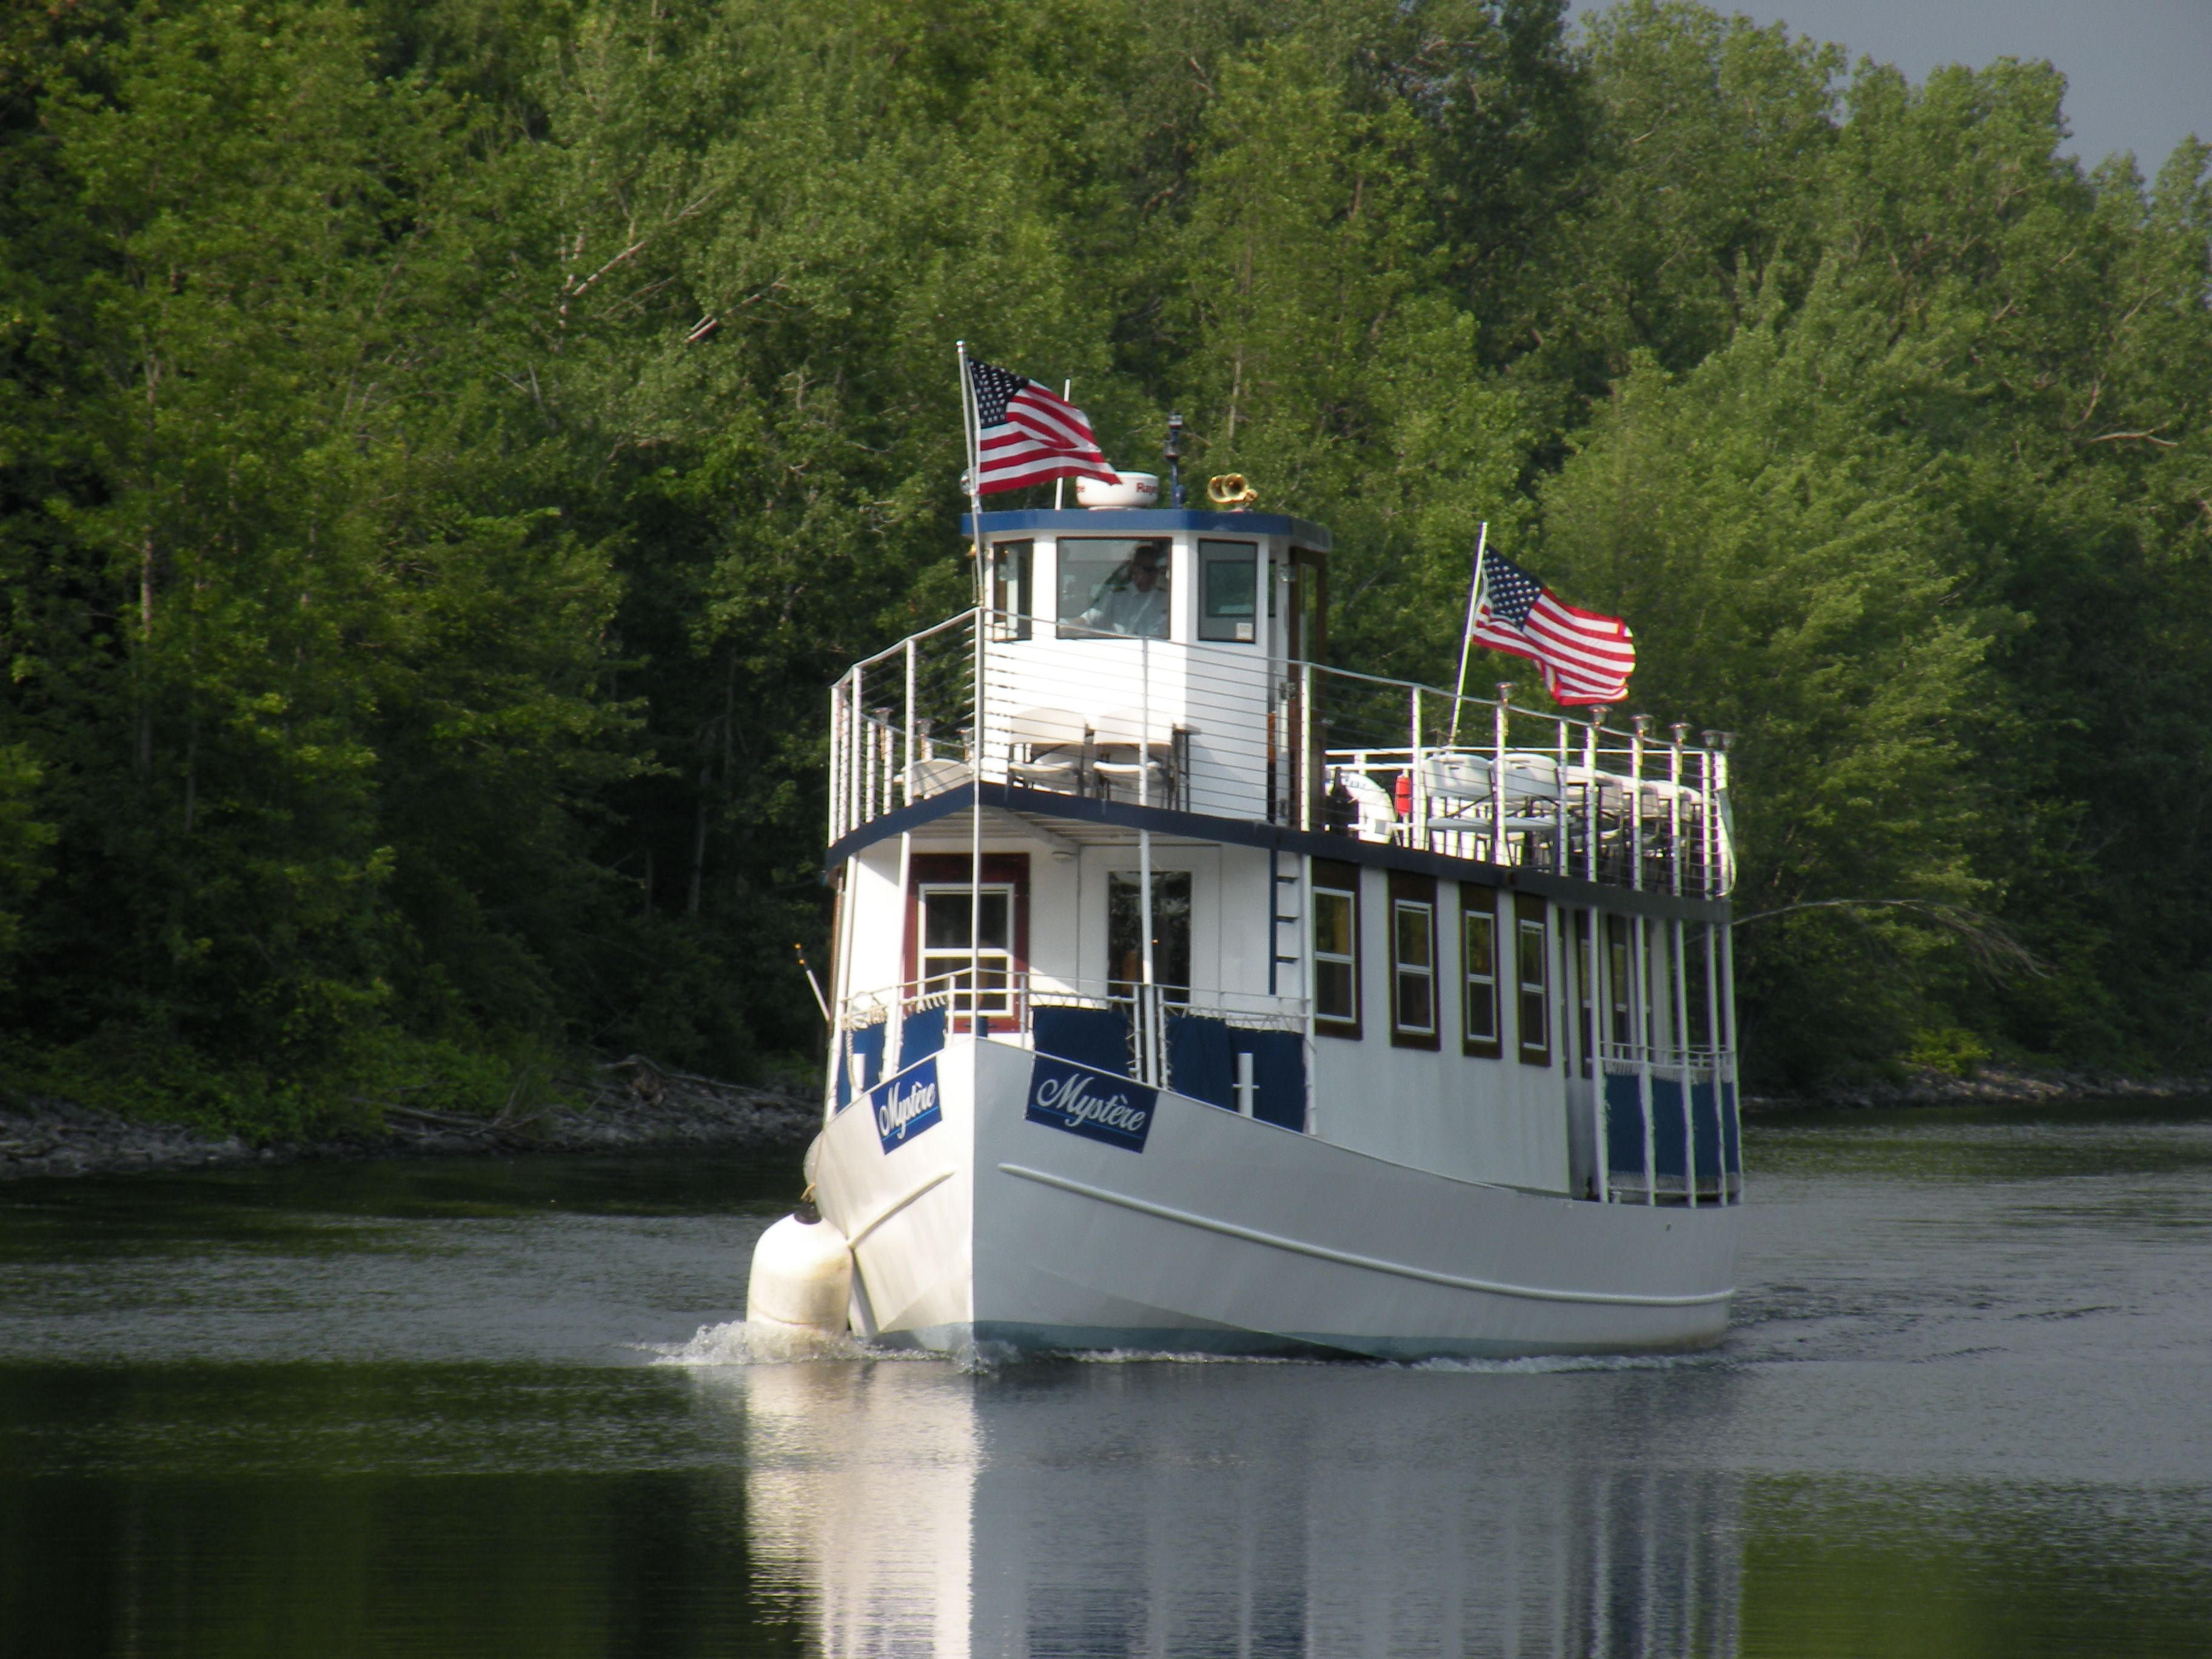 Consider Having Your Wedding Reception On A Sightseeing Boat On The